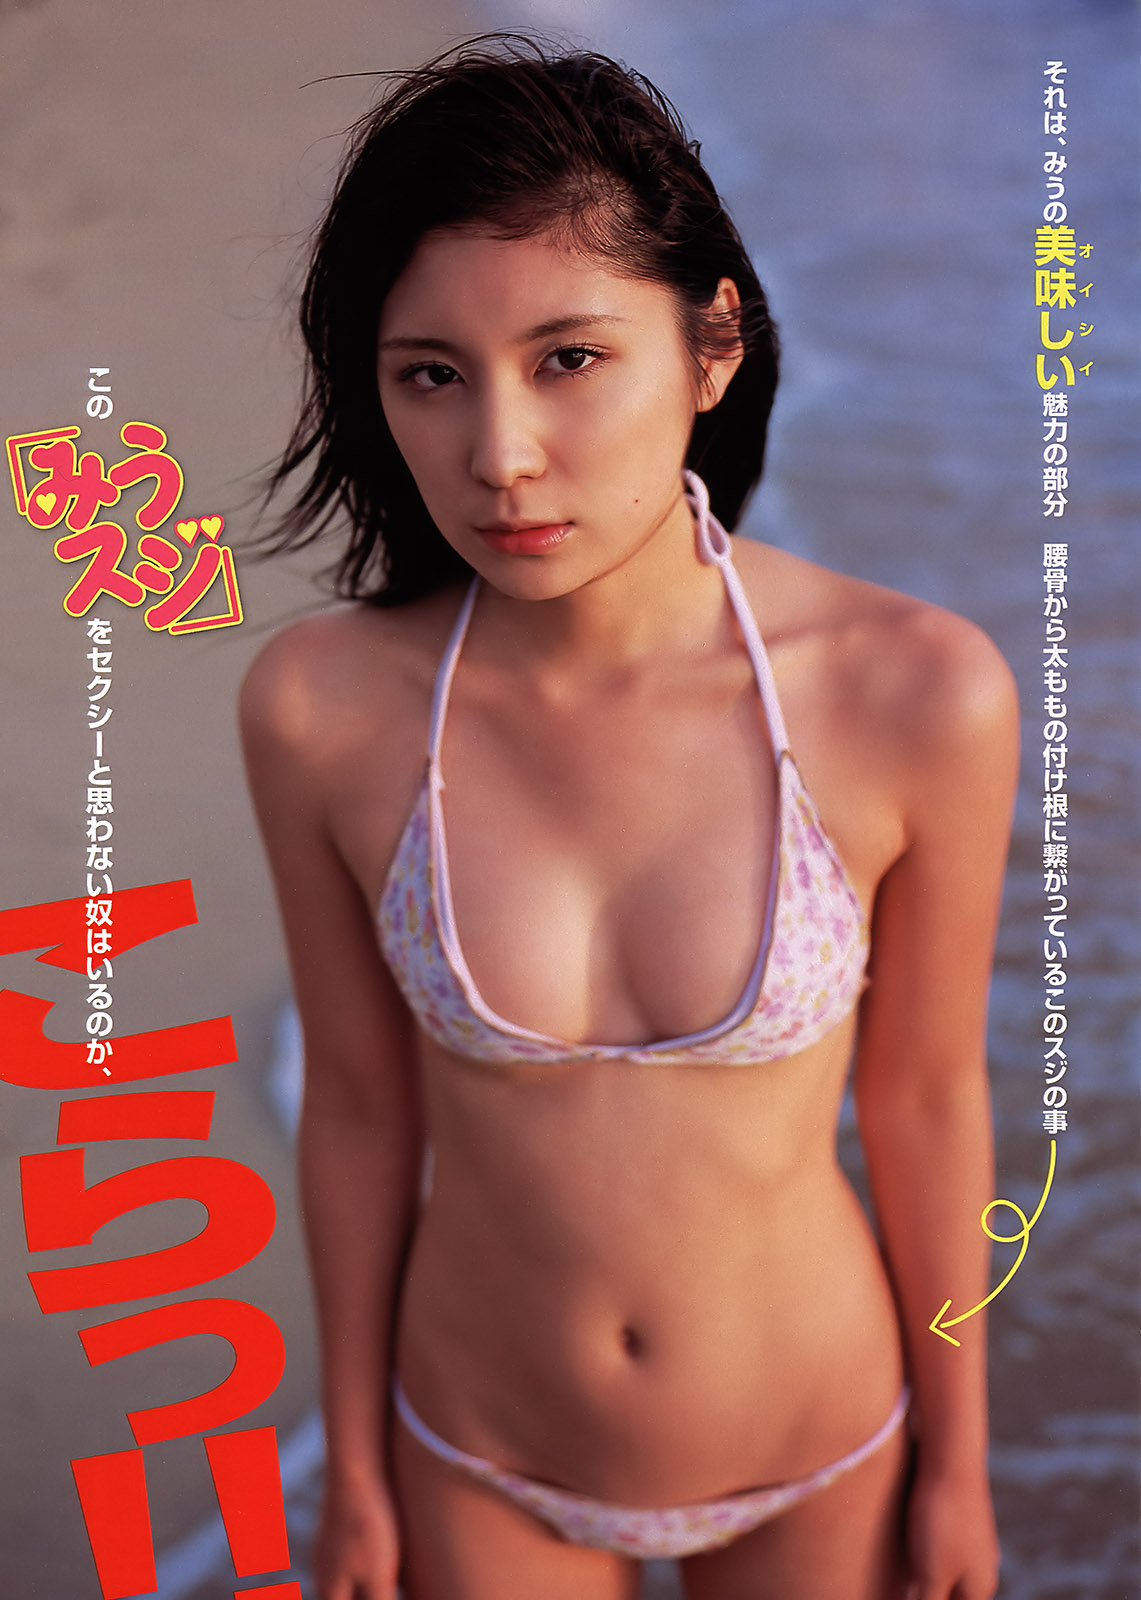 Japanese Junior Idol Miyuu http://hot-asia-gallery.blogspot.com/2011